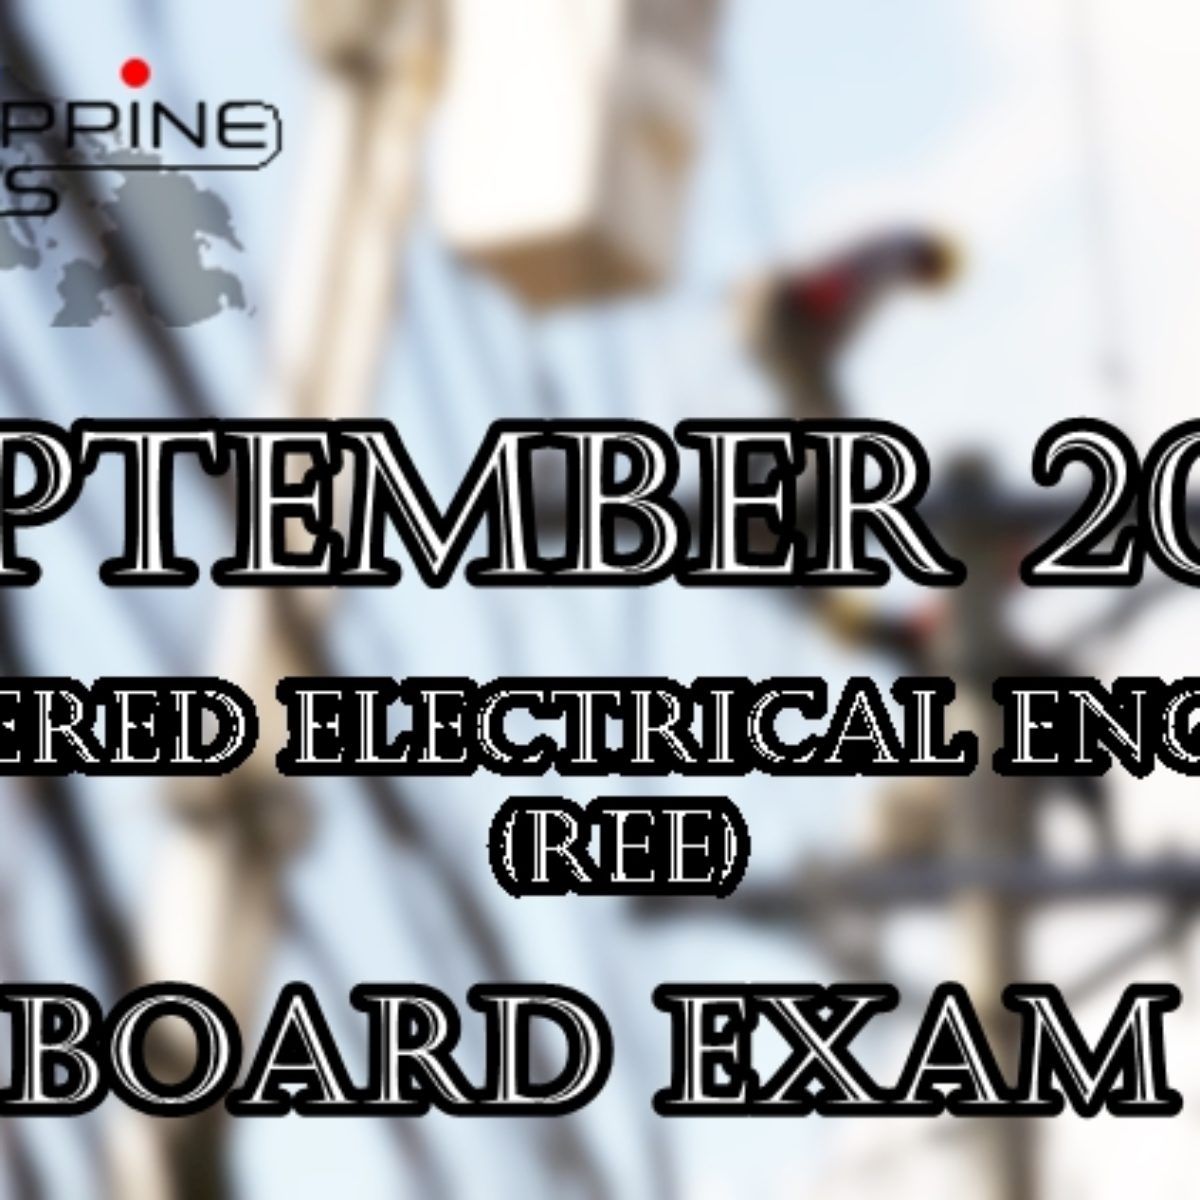 Results September 2017 Registered Electrical Engineers Ree